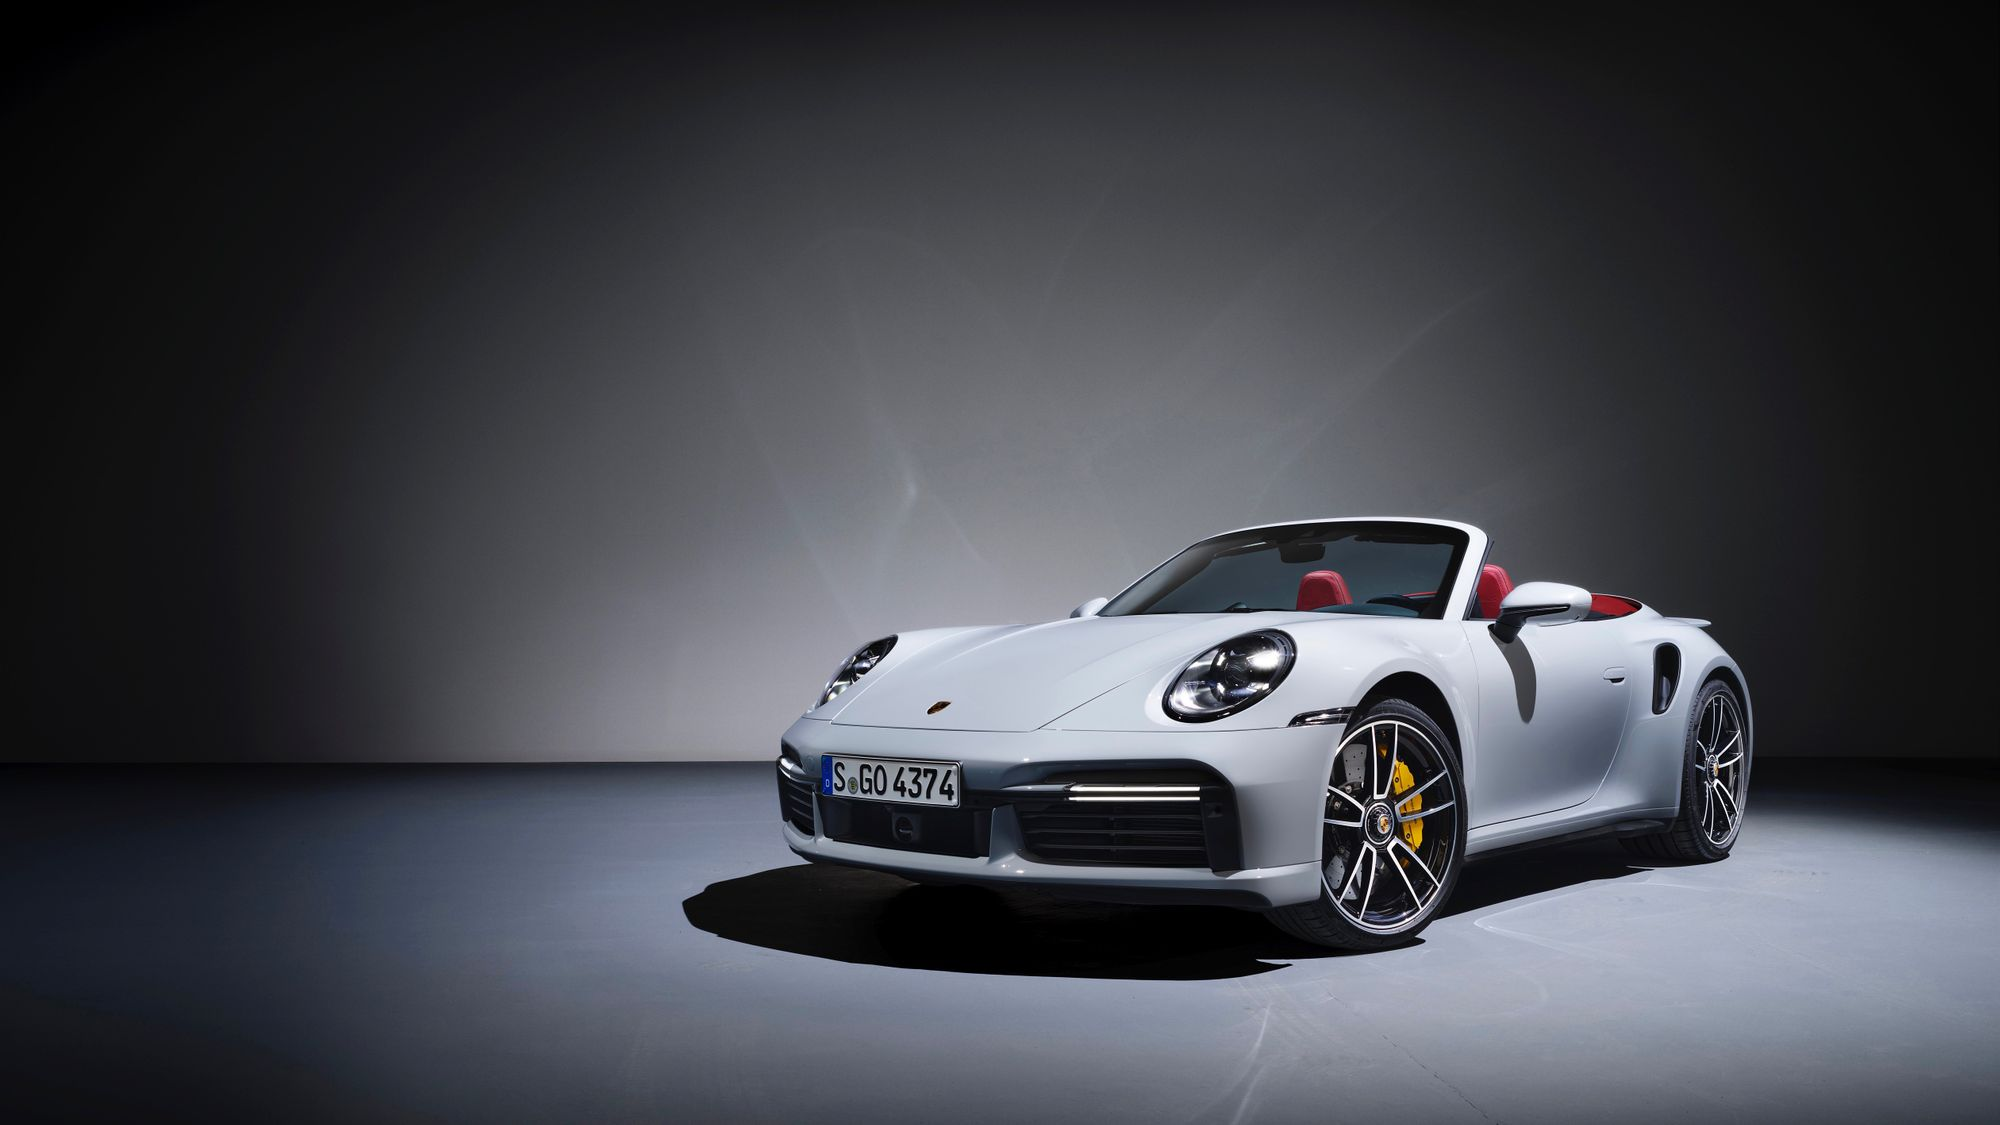 News Porsche 911 Turbo S Is An Instant Collectible